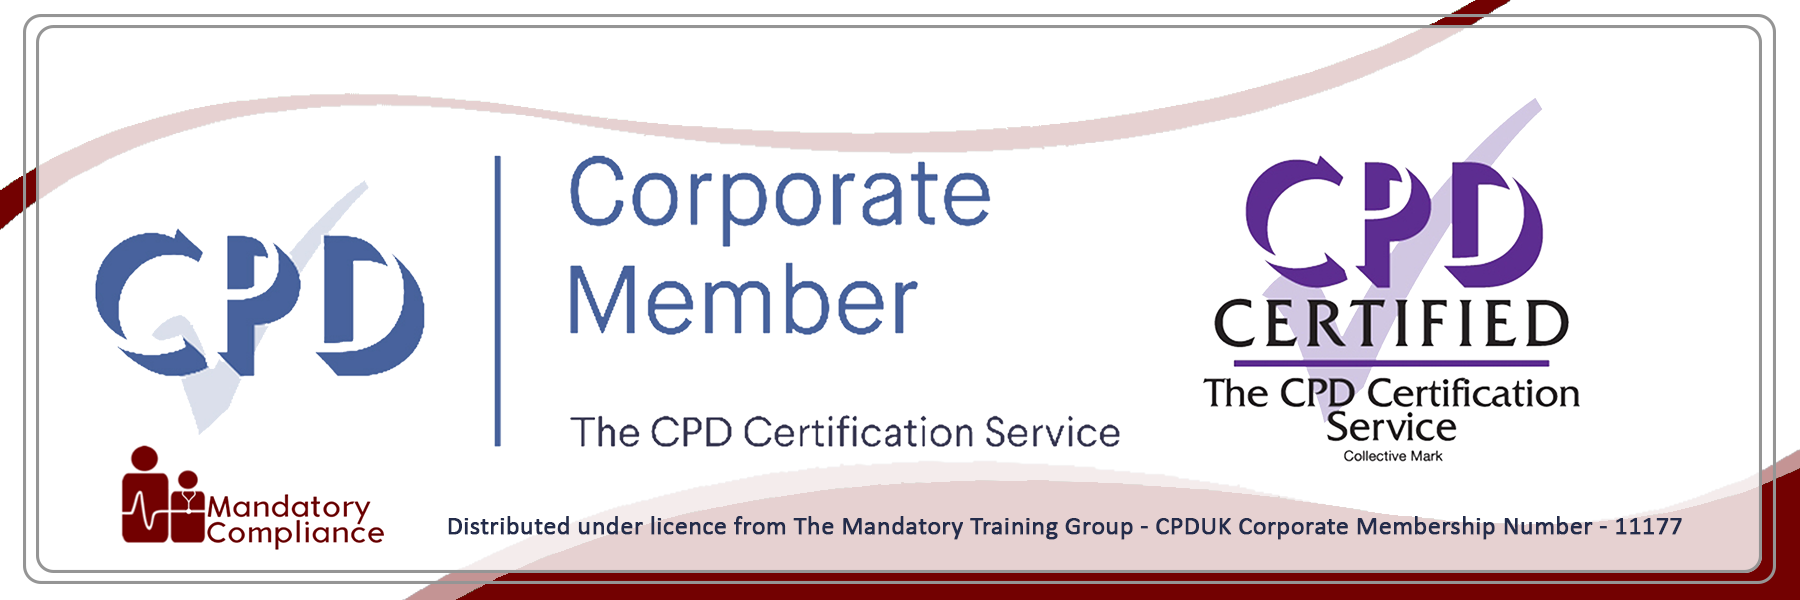 Telework and Telecommuting - Online Training Course - CPD Accredited - Mandatory Compliance UK -